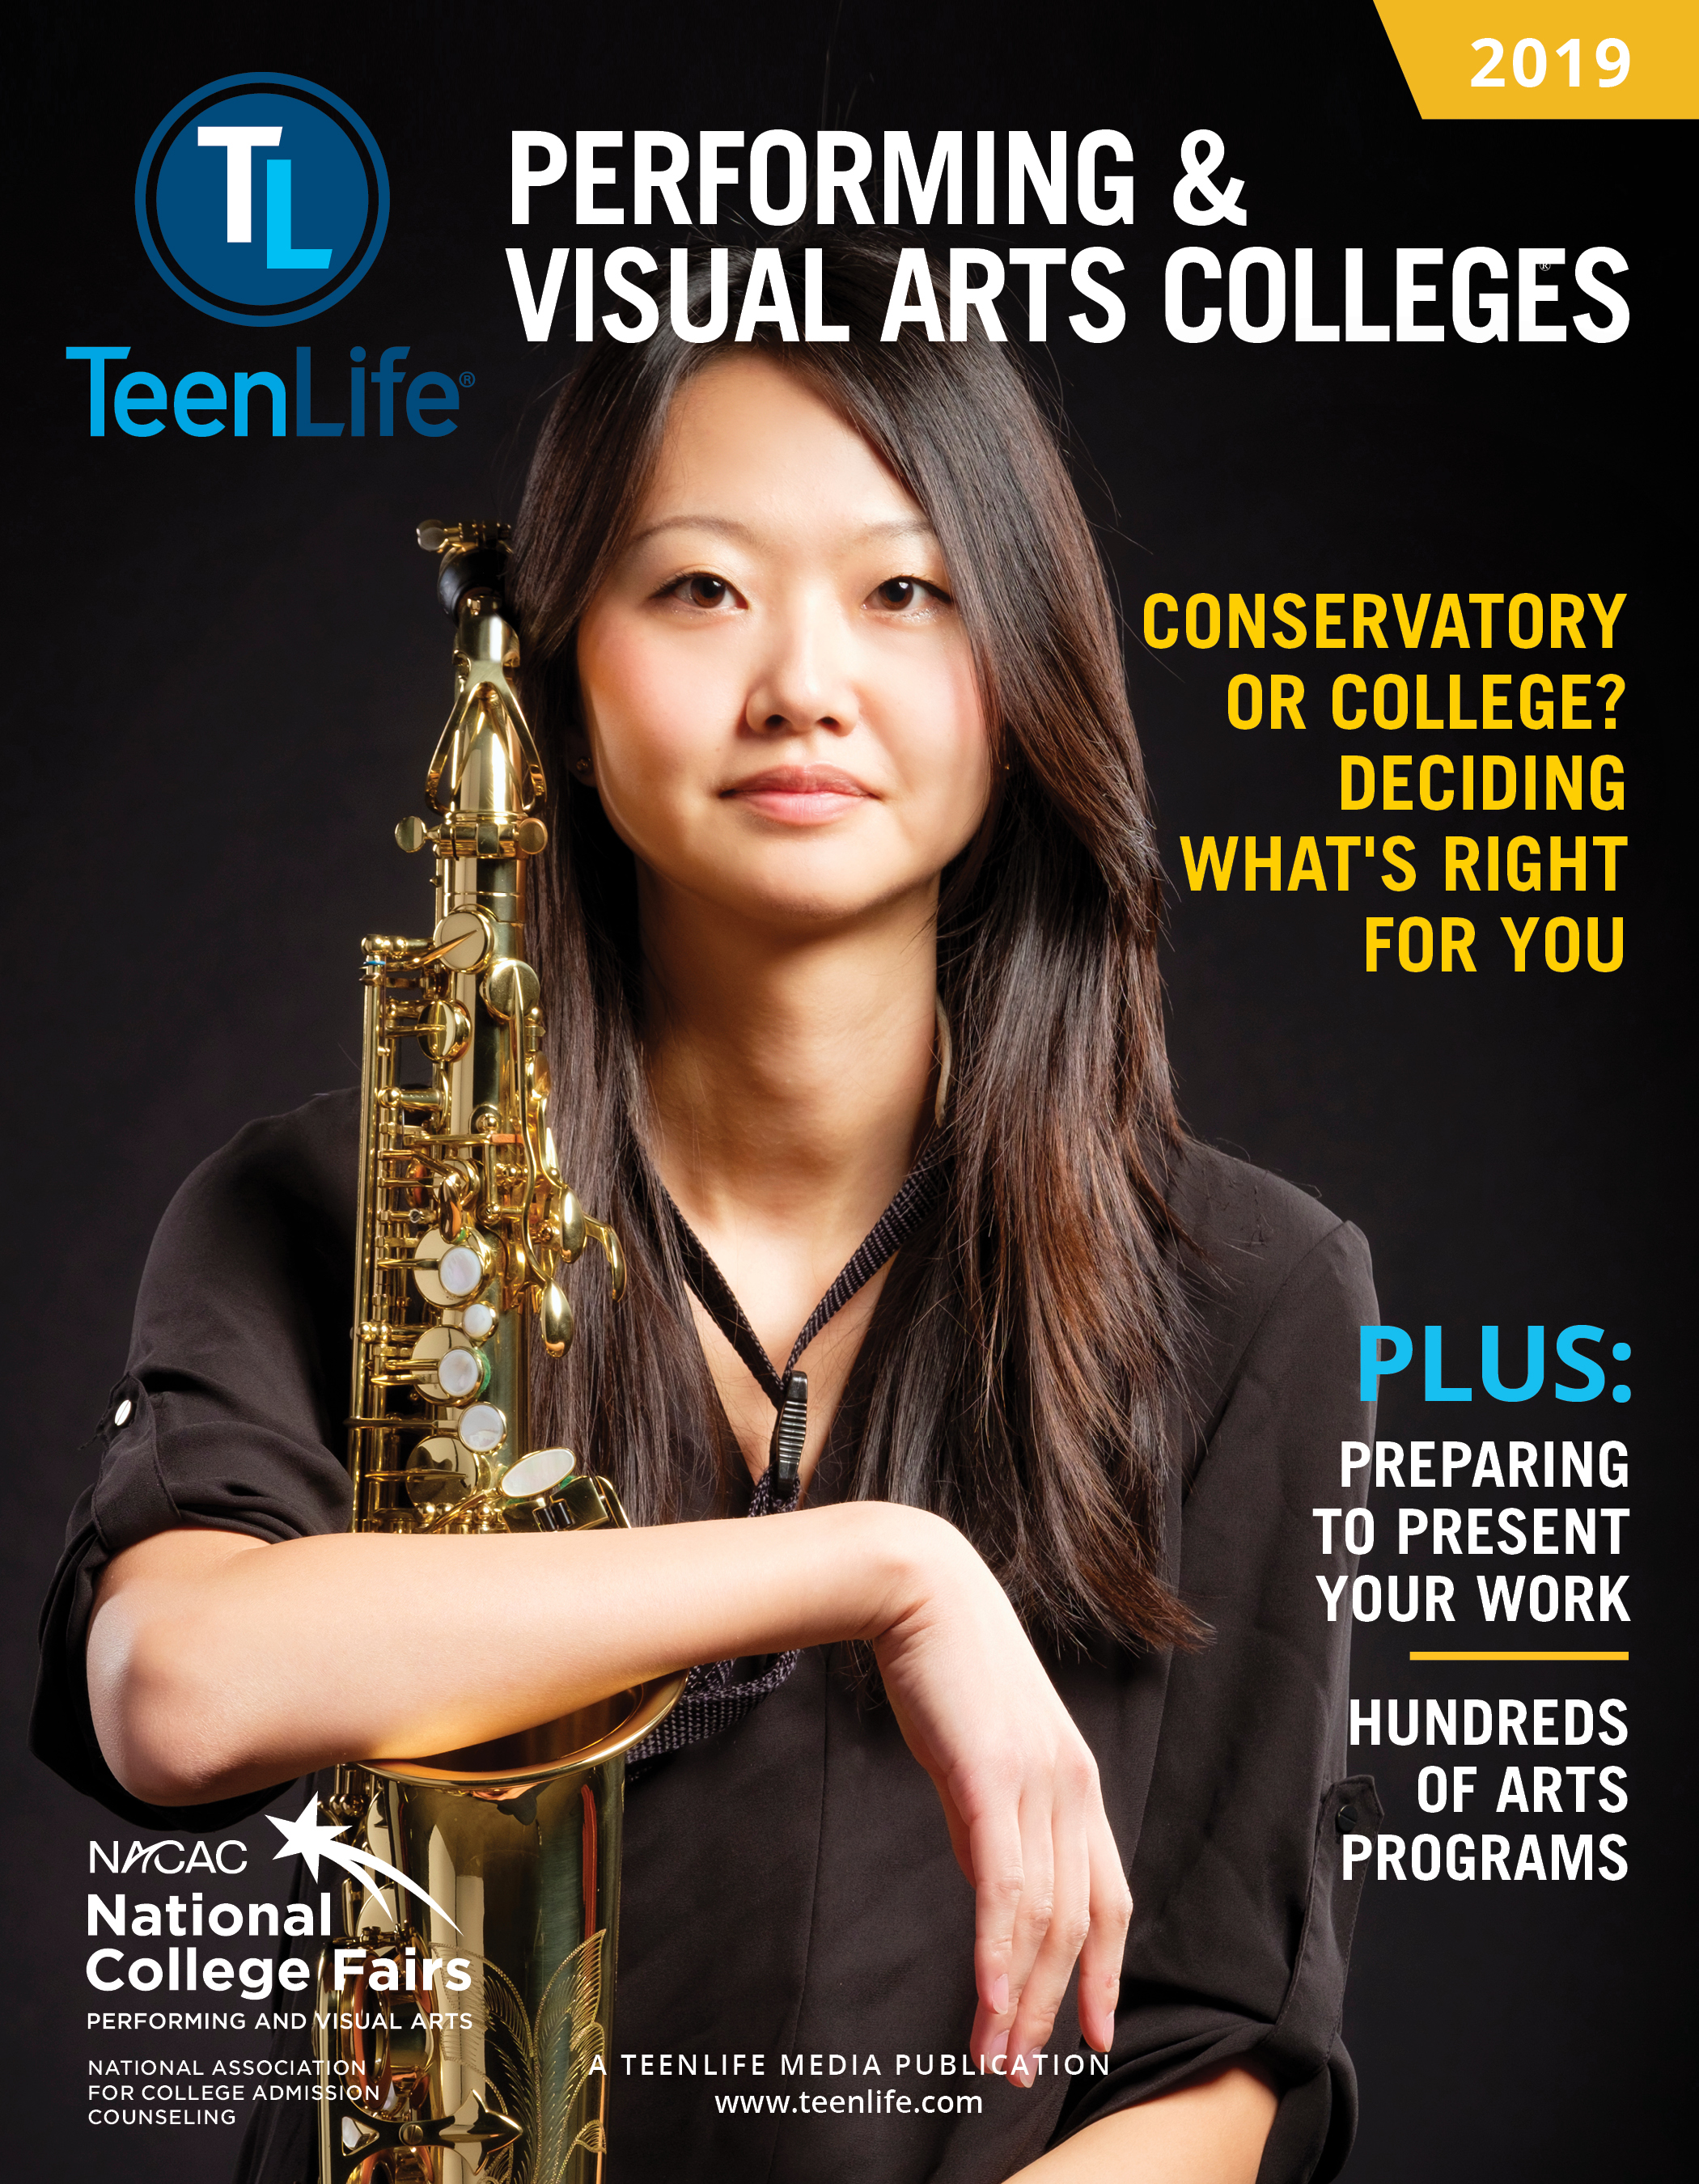 Guide to Performing and Visual Arts Colleges 2019